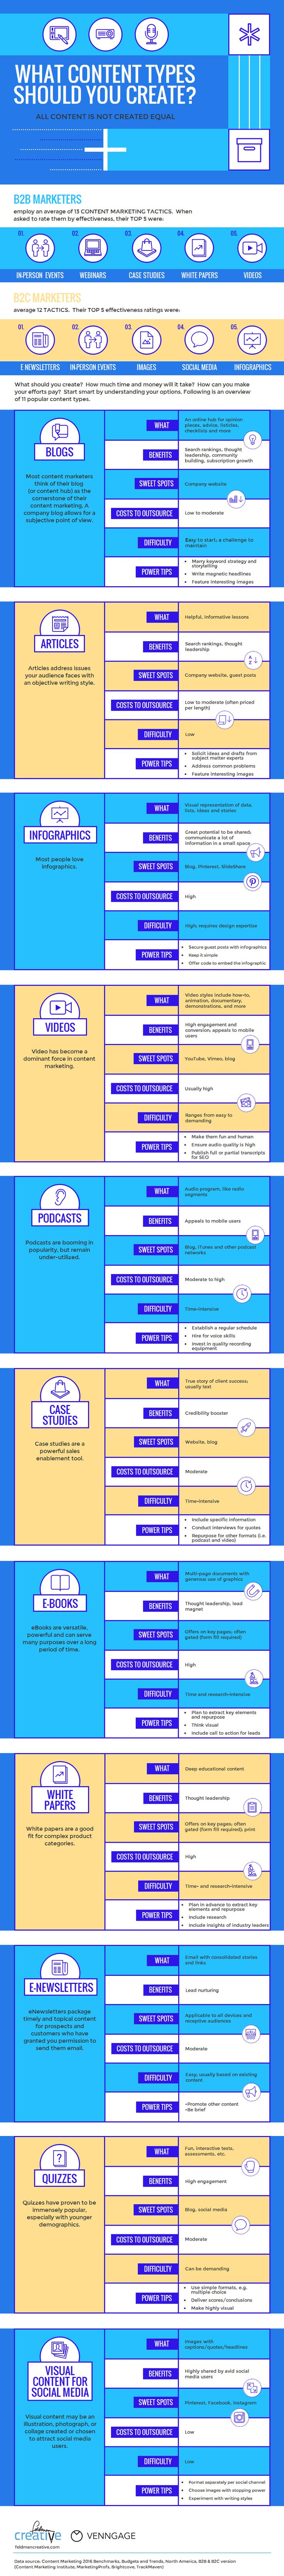 Types of Branded Content: A Guide to 11 Popular Formats